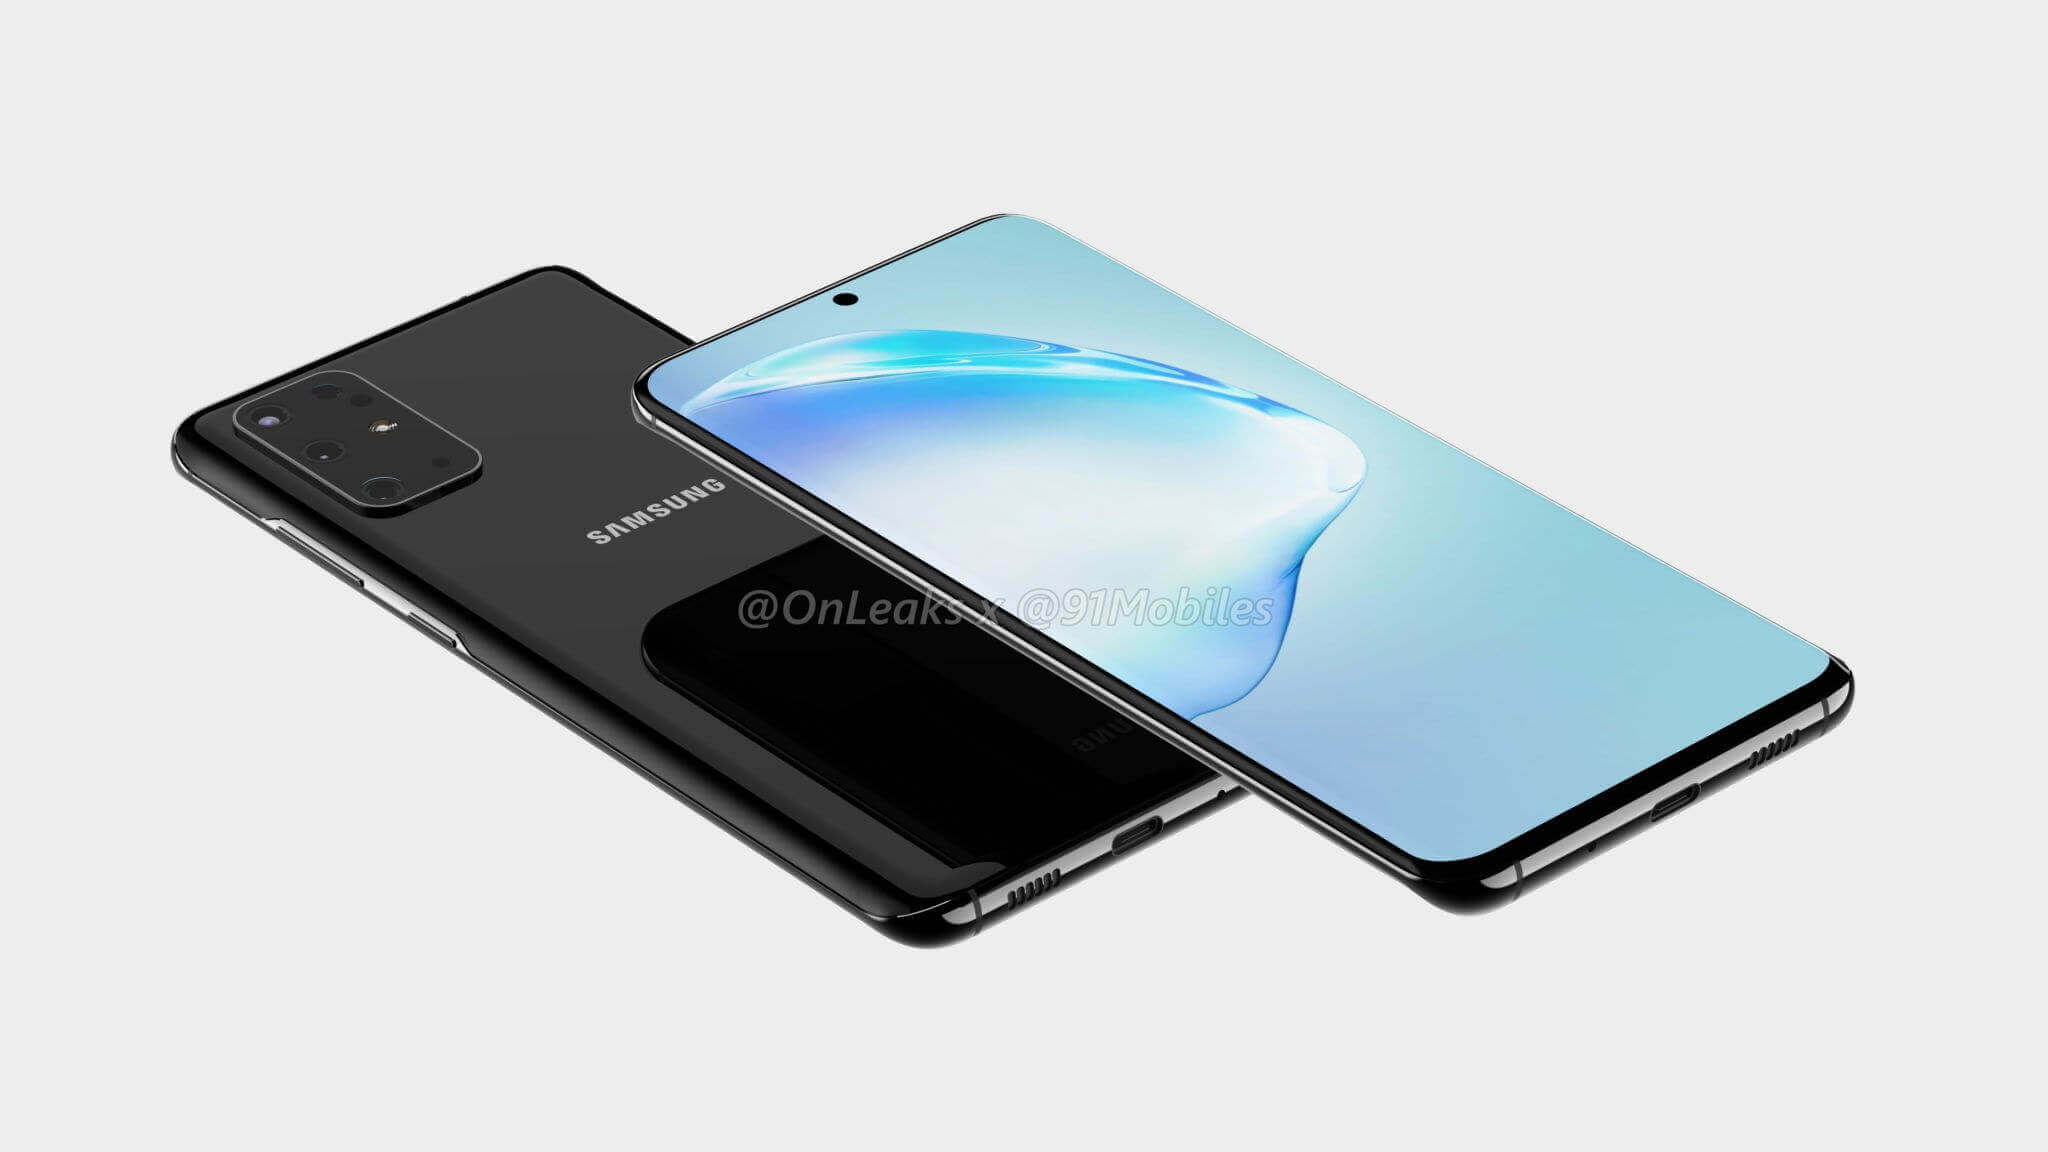 Samsung's Galaxy S11 to feature 5x telephoto lens and 5,000 mAh battery